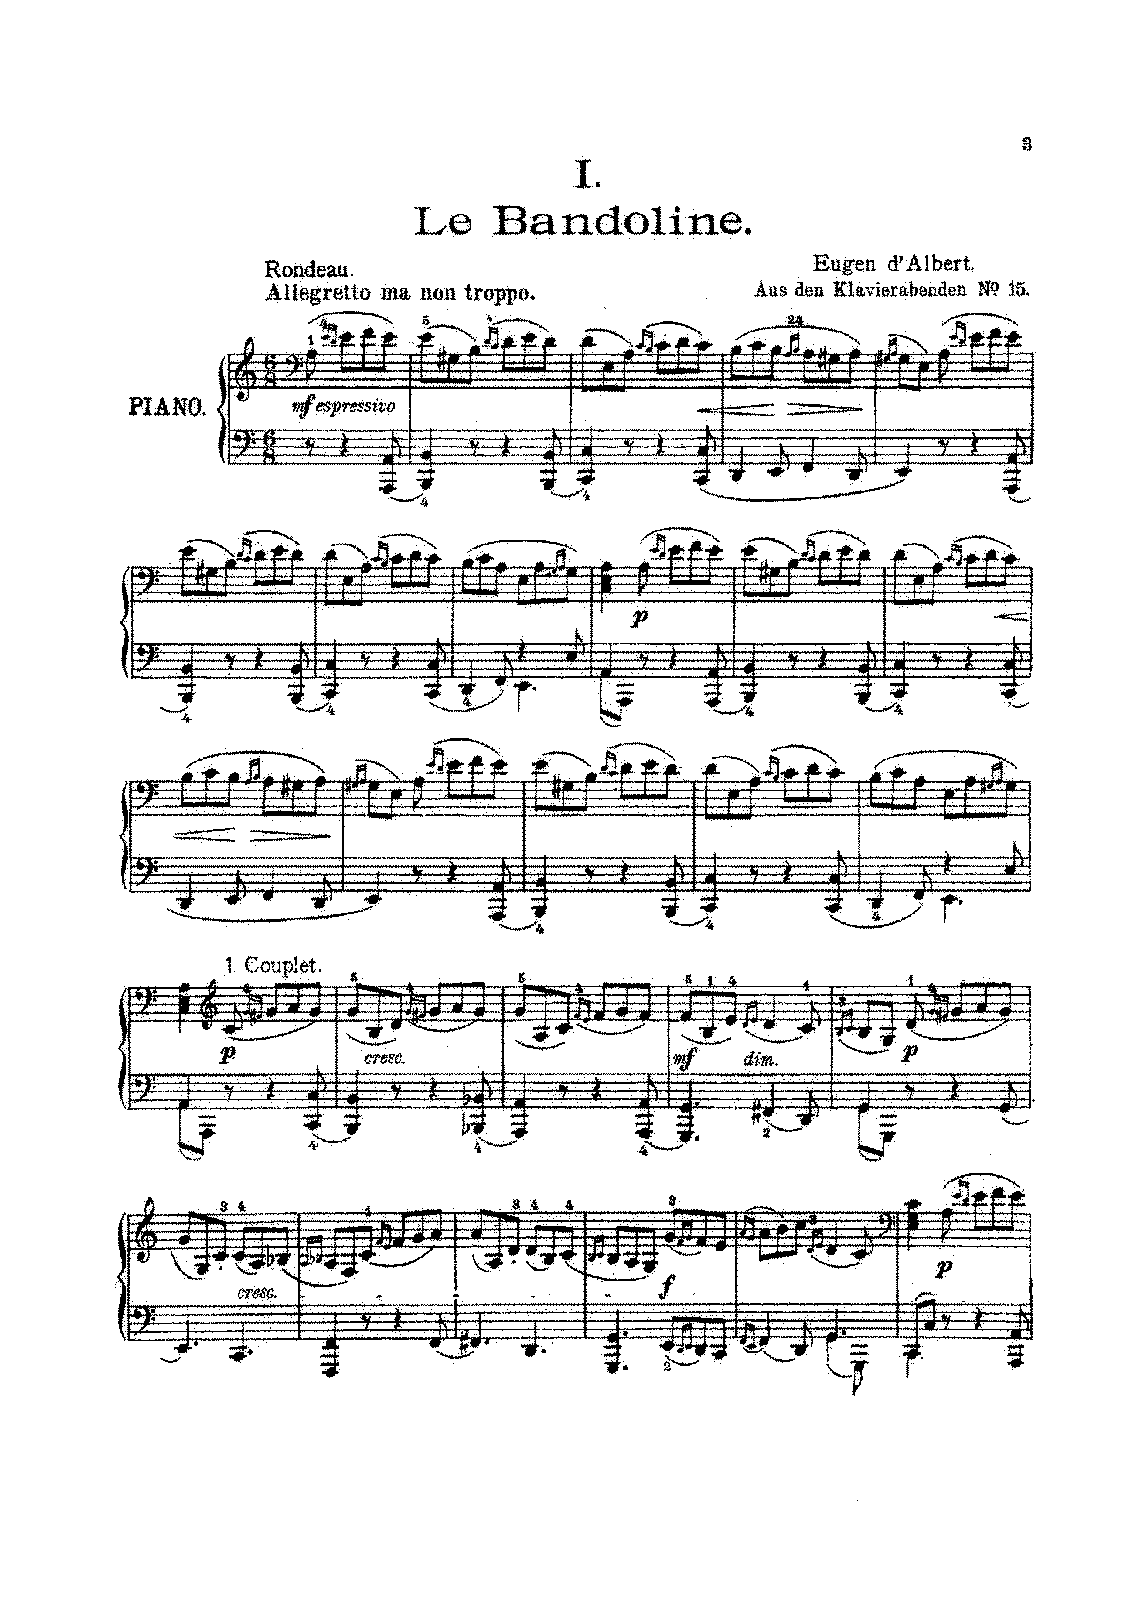 PMLP331483-Albert, Eugen D' - Transcription - Couperin, François - Suite 18 - no 1 La Bandoline.pdf